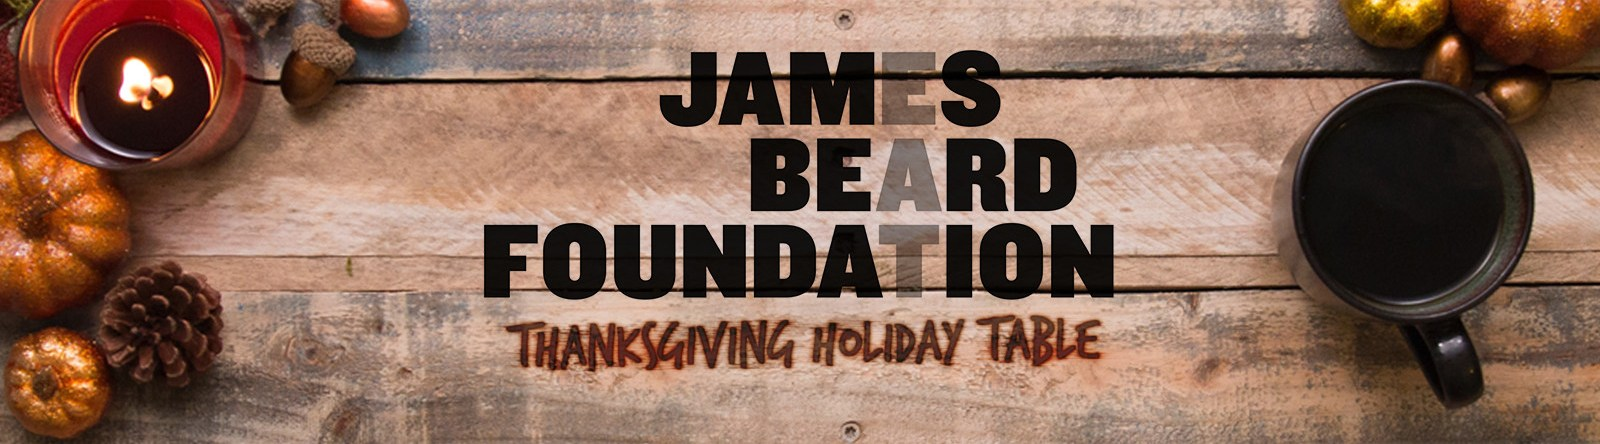 James Beard Foundation | Thanksgiving Holiday Table